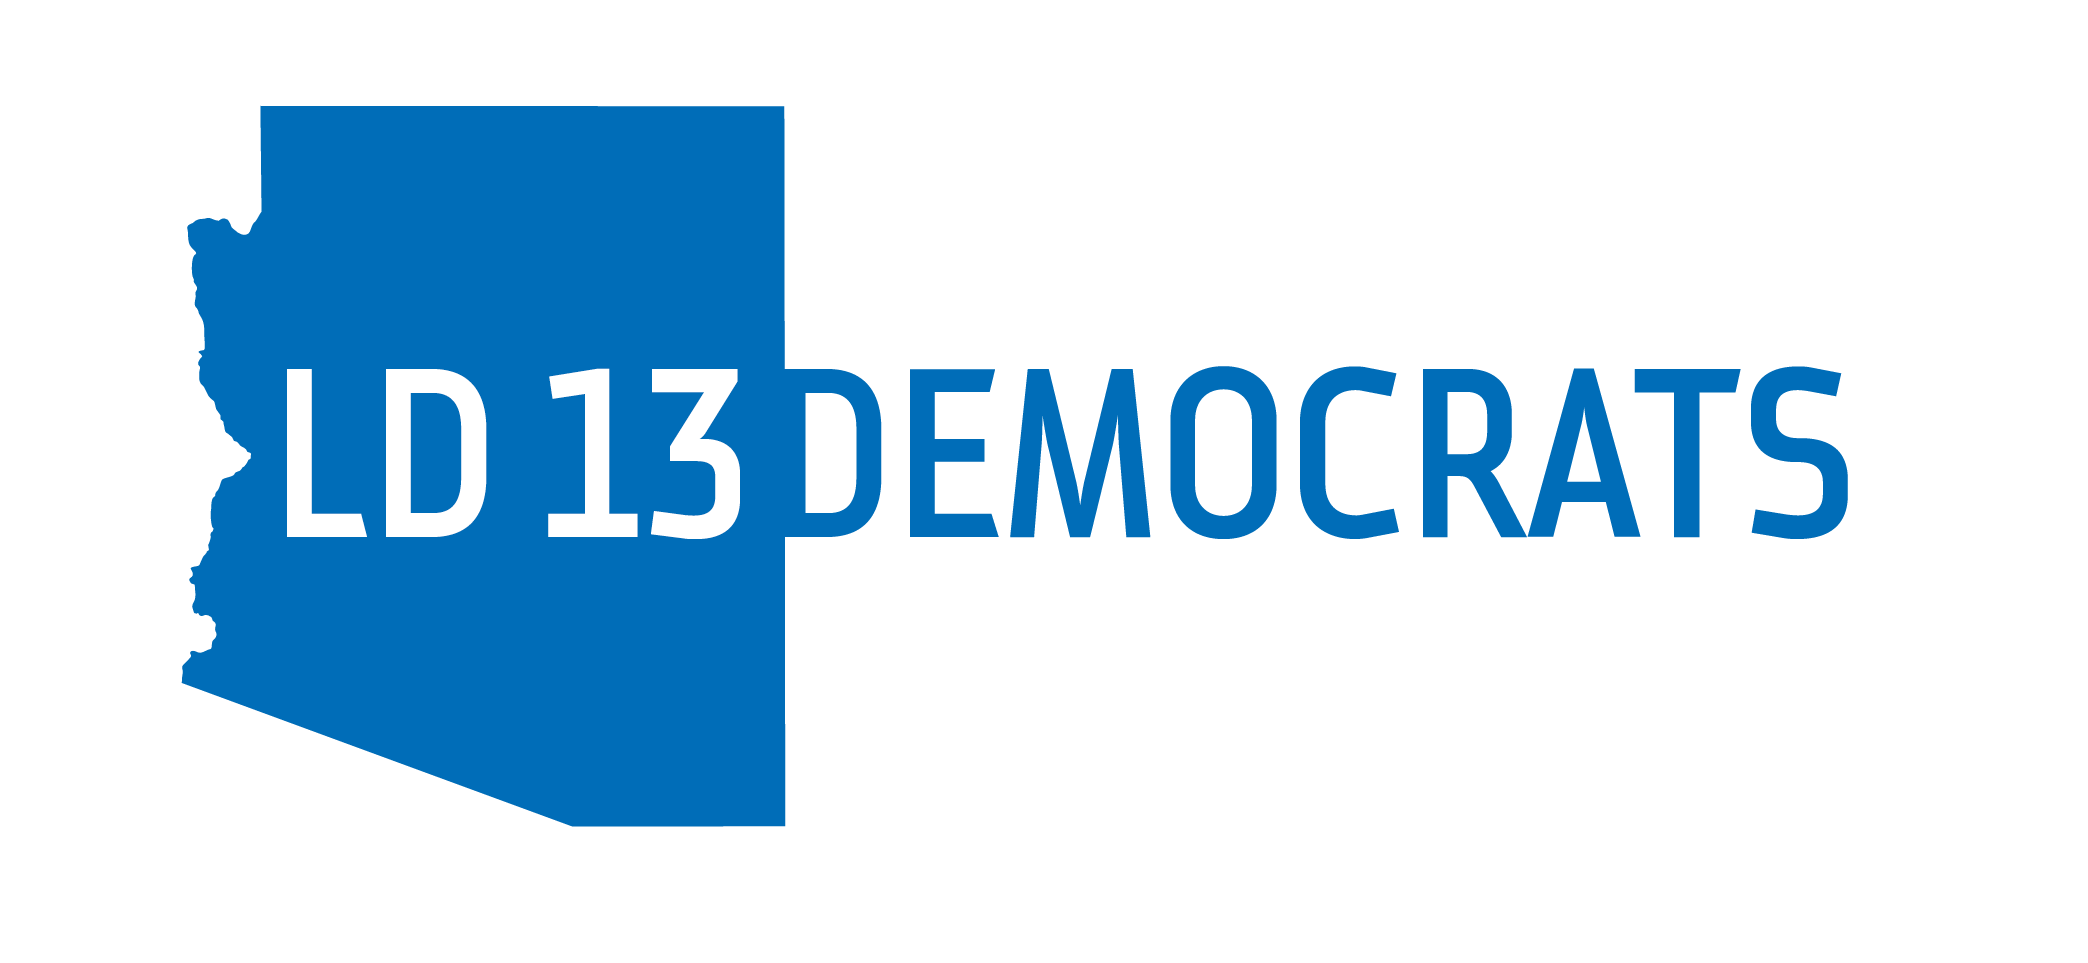 LD13_Logo_Blue_State_(1).png